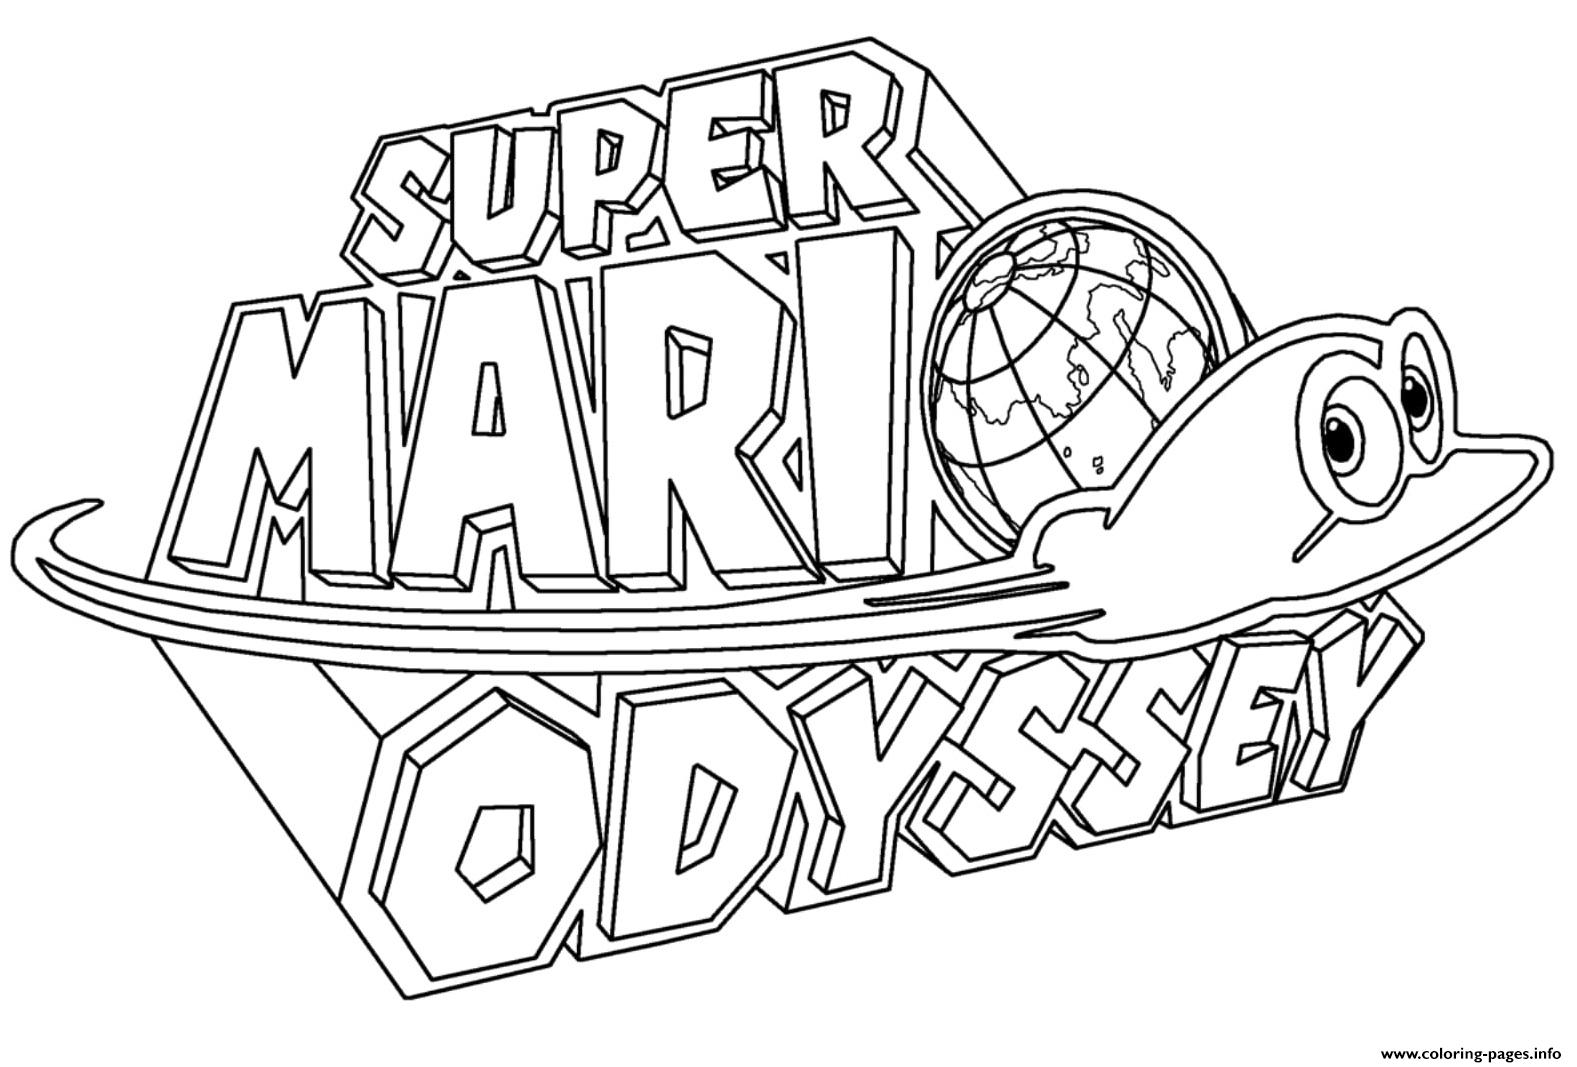 Super Mario Coloring Page 9ncm Super Mario Odyssey Coloring Pages